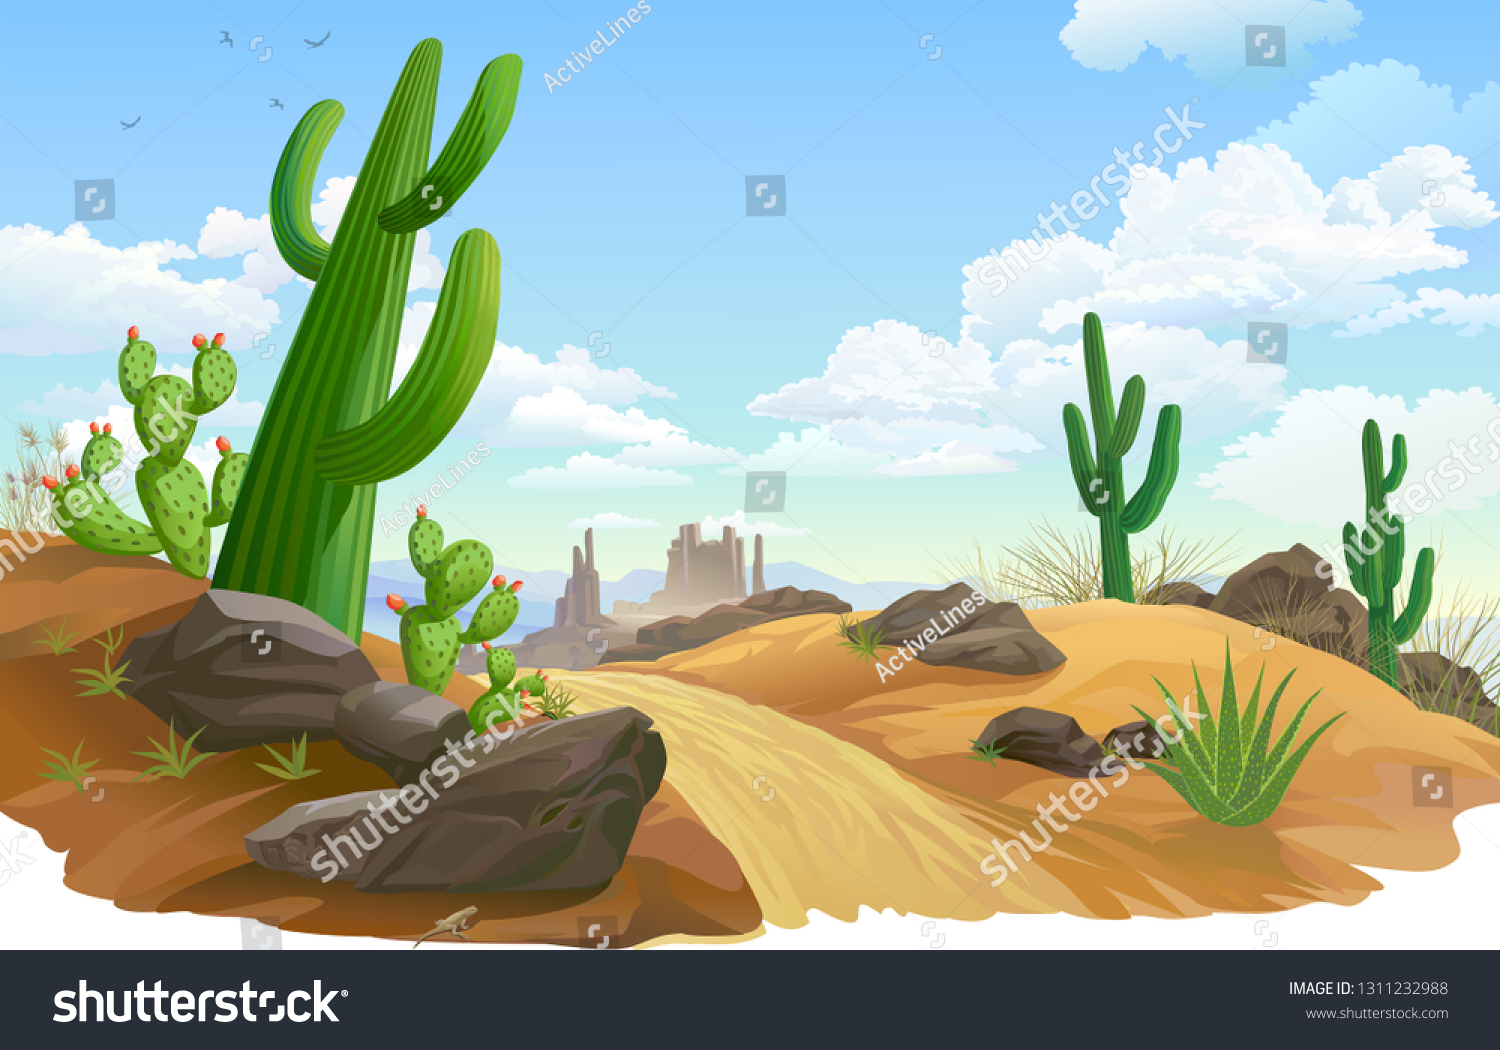 Rocks, Saguaro and cactus infested desert region. A sandy road across desert vegetation.